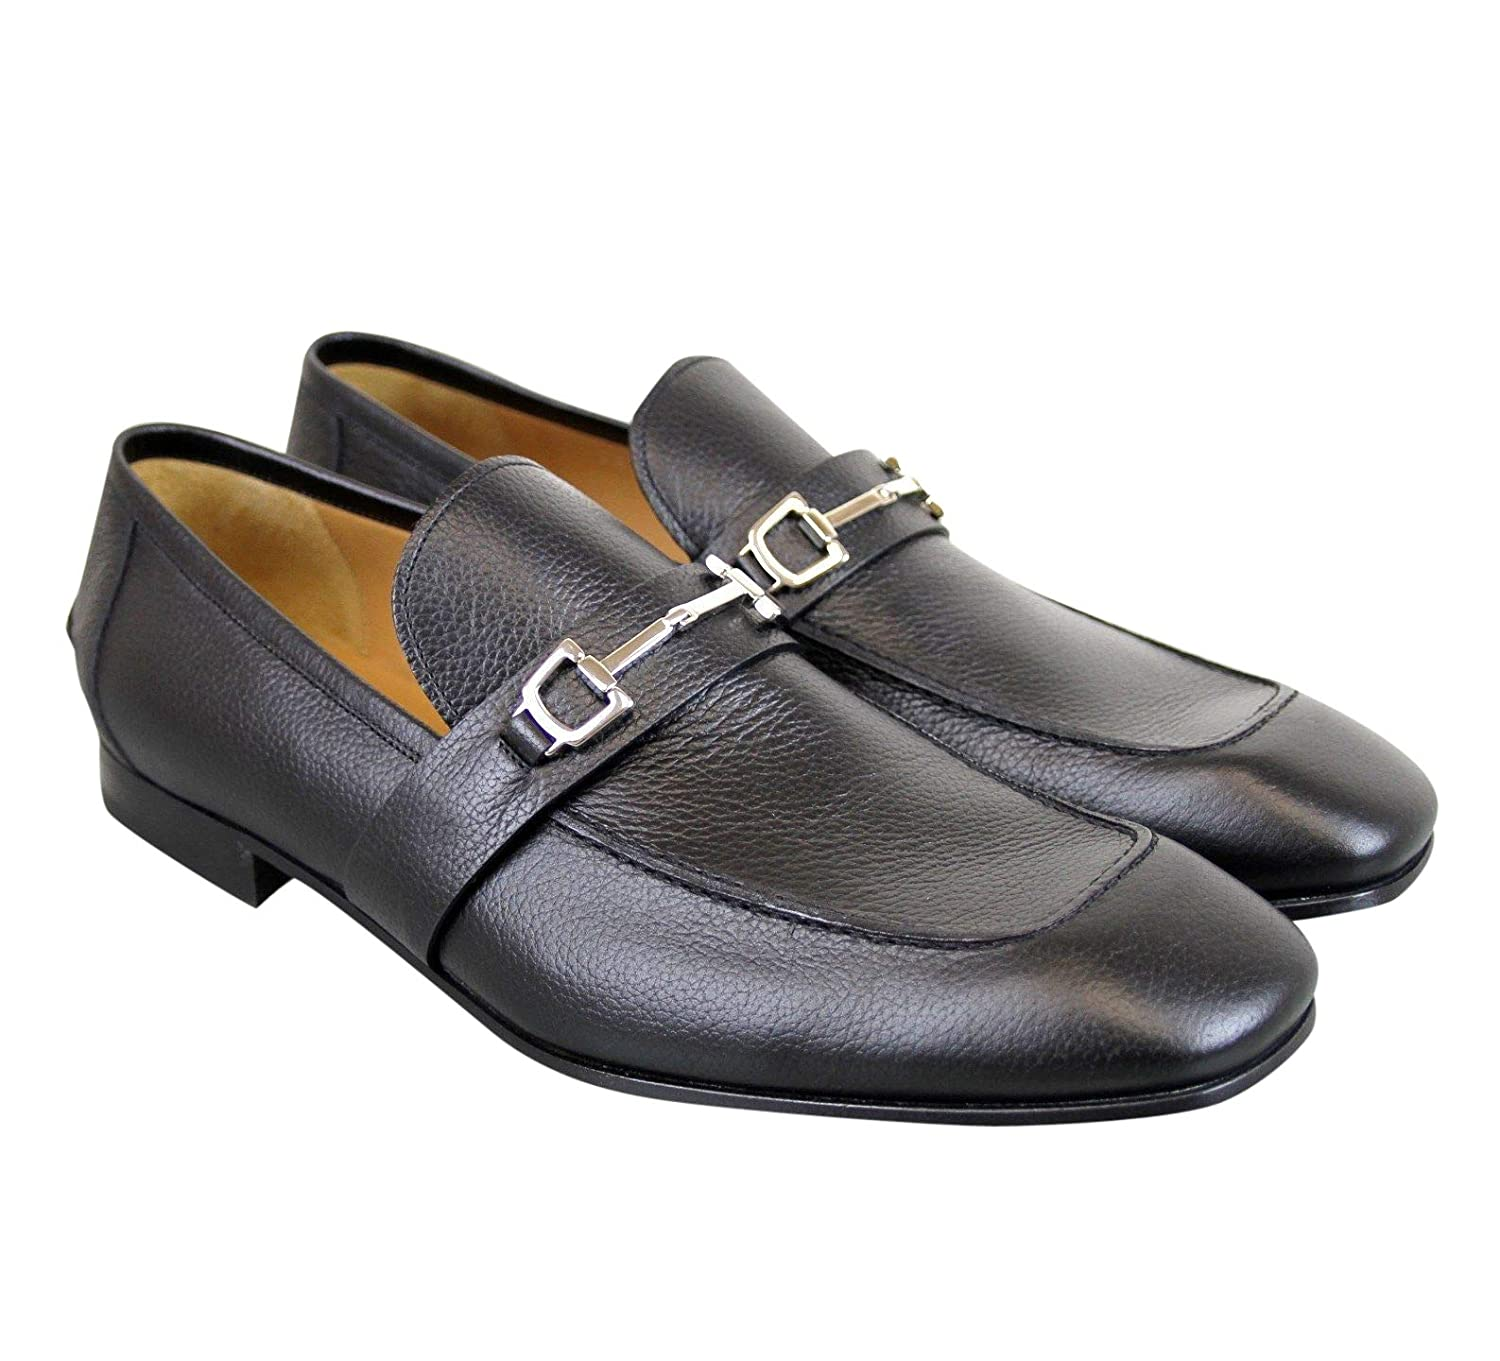 b7a4b856ee15d Amazon.com  Gucci Horsebit Black Leather Loafer 253302 1000 (14.5 G   15.5  US)  Shoes